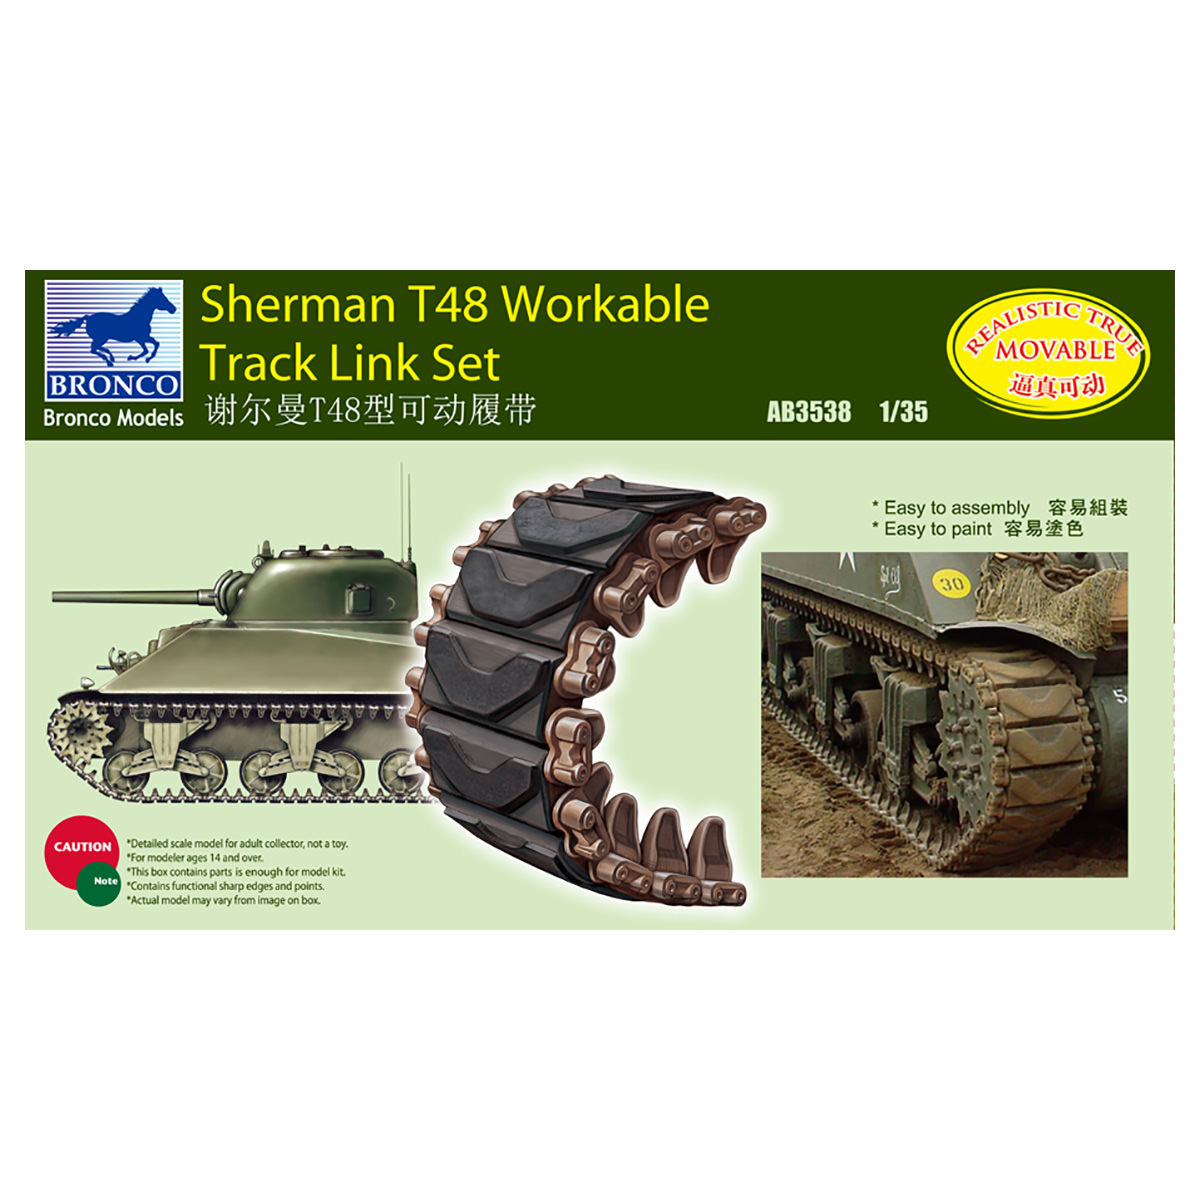 Bronco AB3538 1/35 Sherman T48 Workable Track Link Set Model Kit